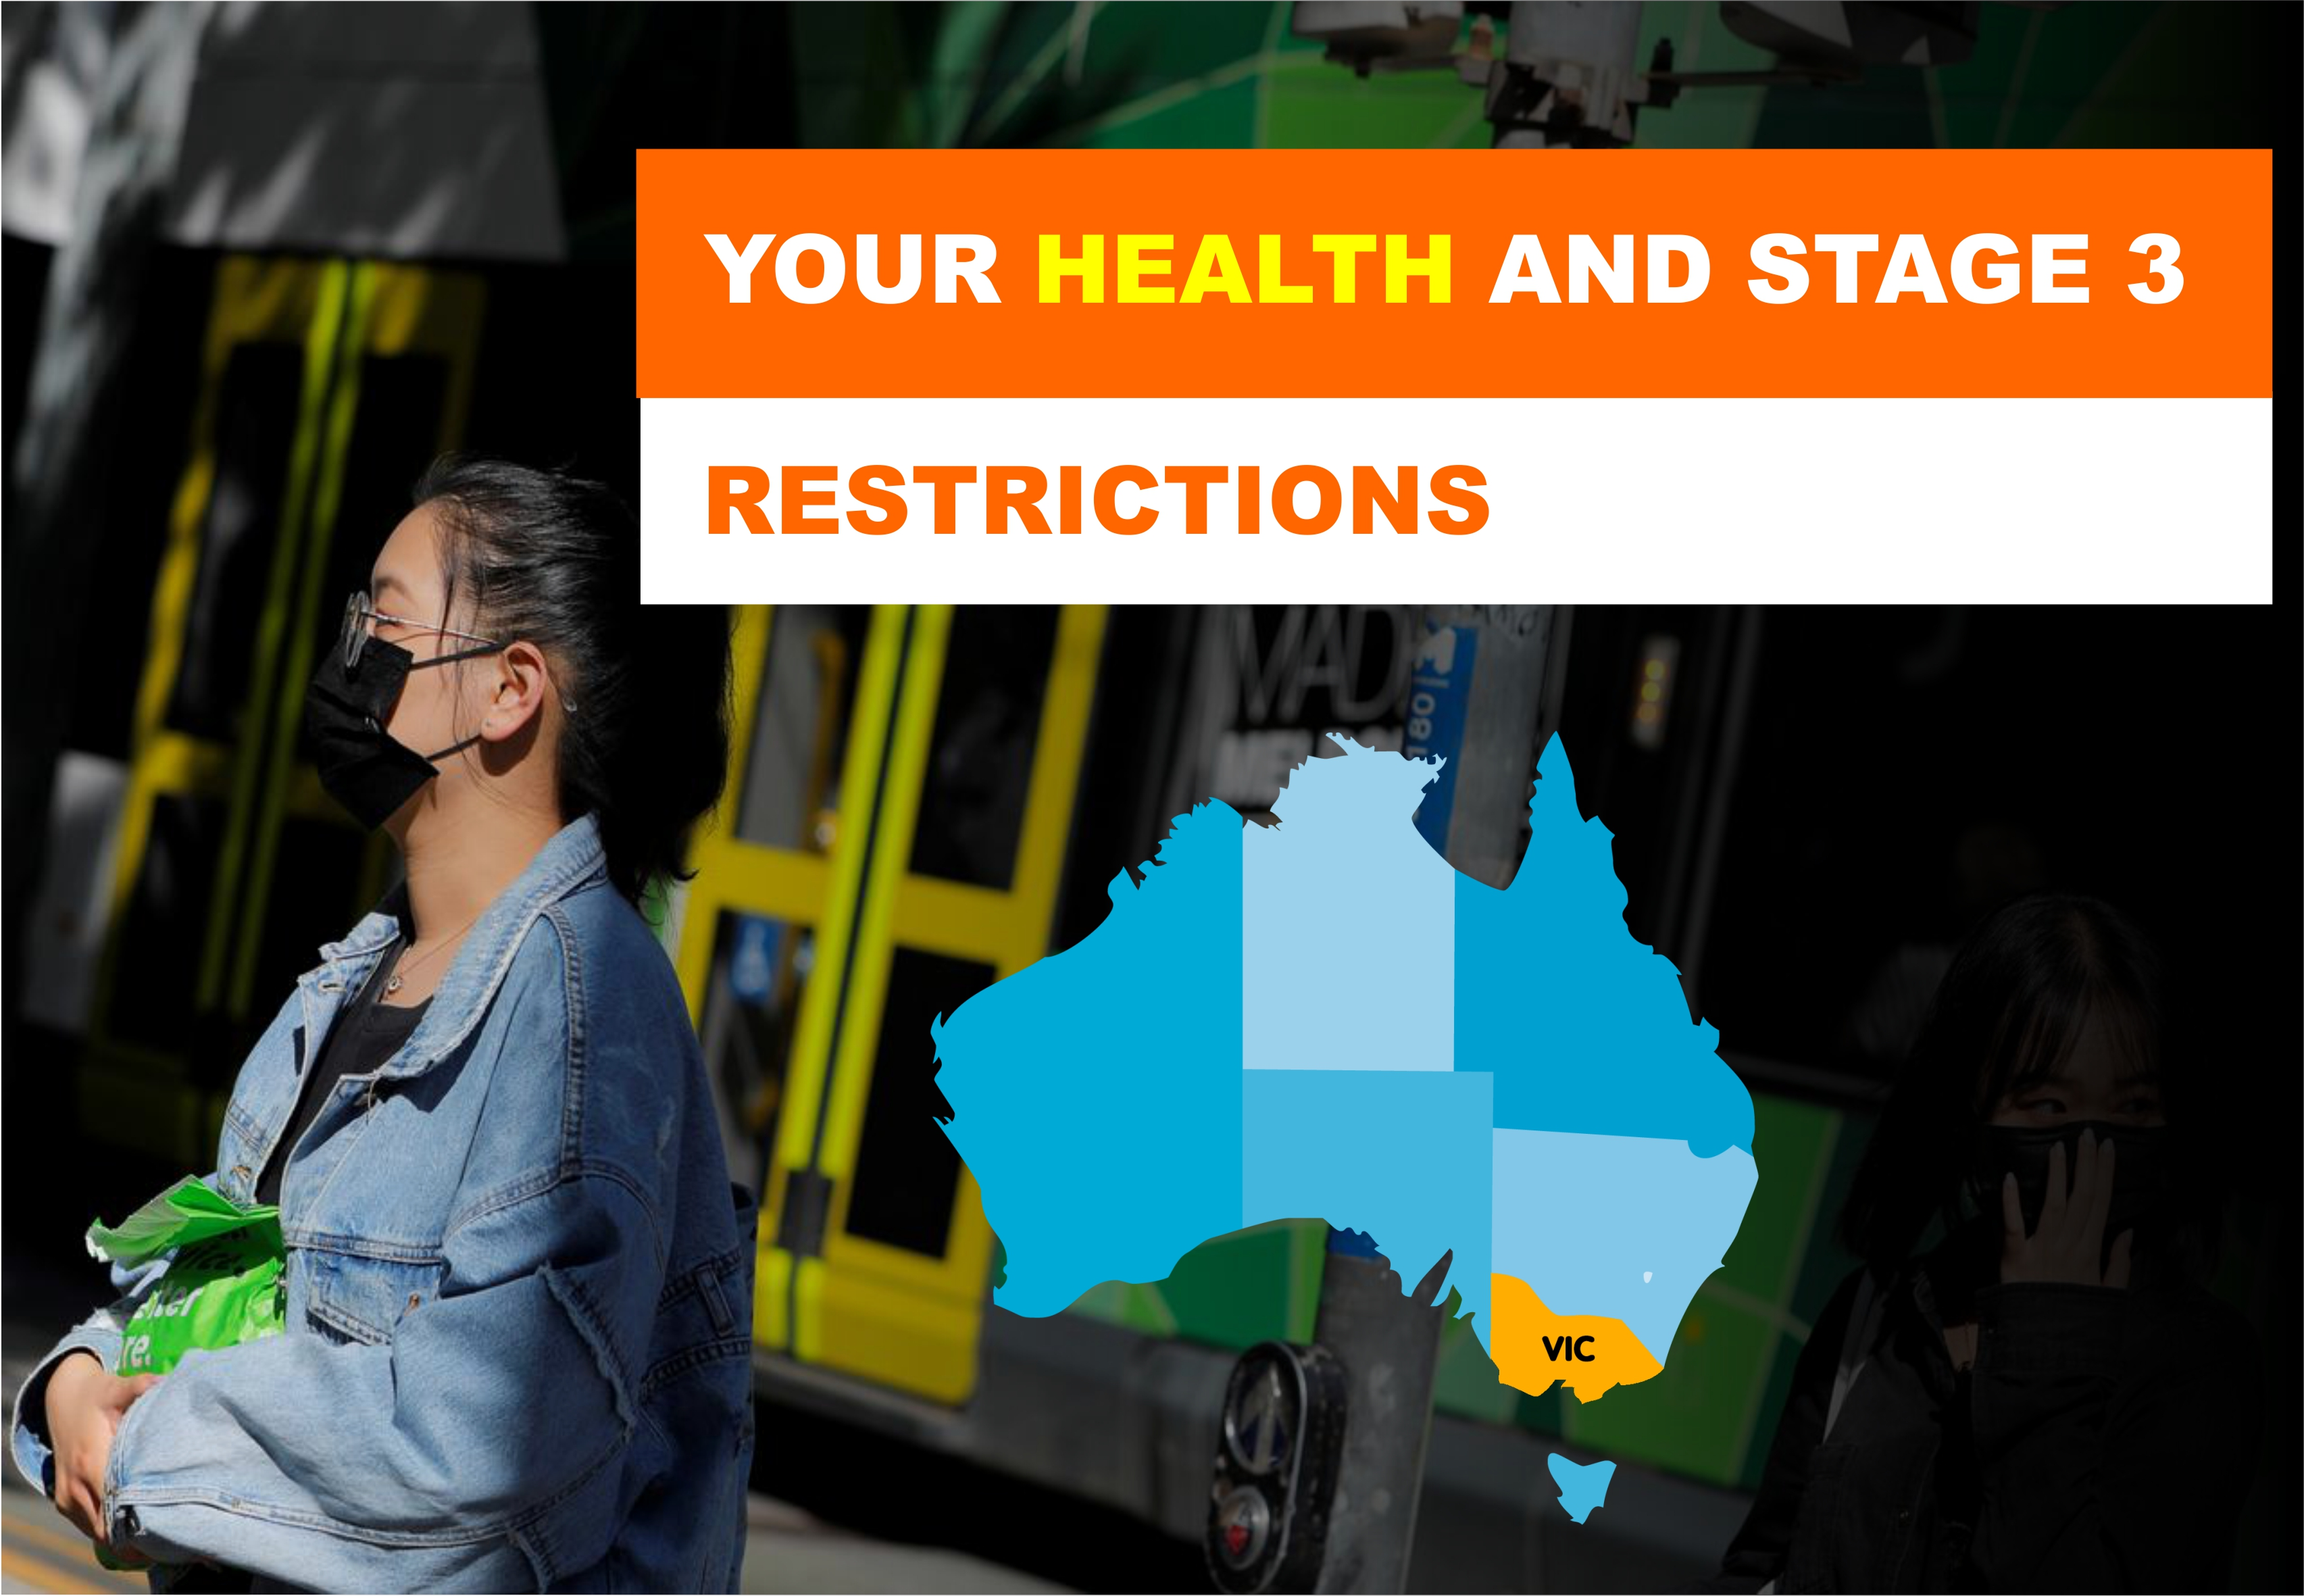 Your HEALTH and stage 3 restrictions in Melbourne